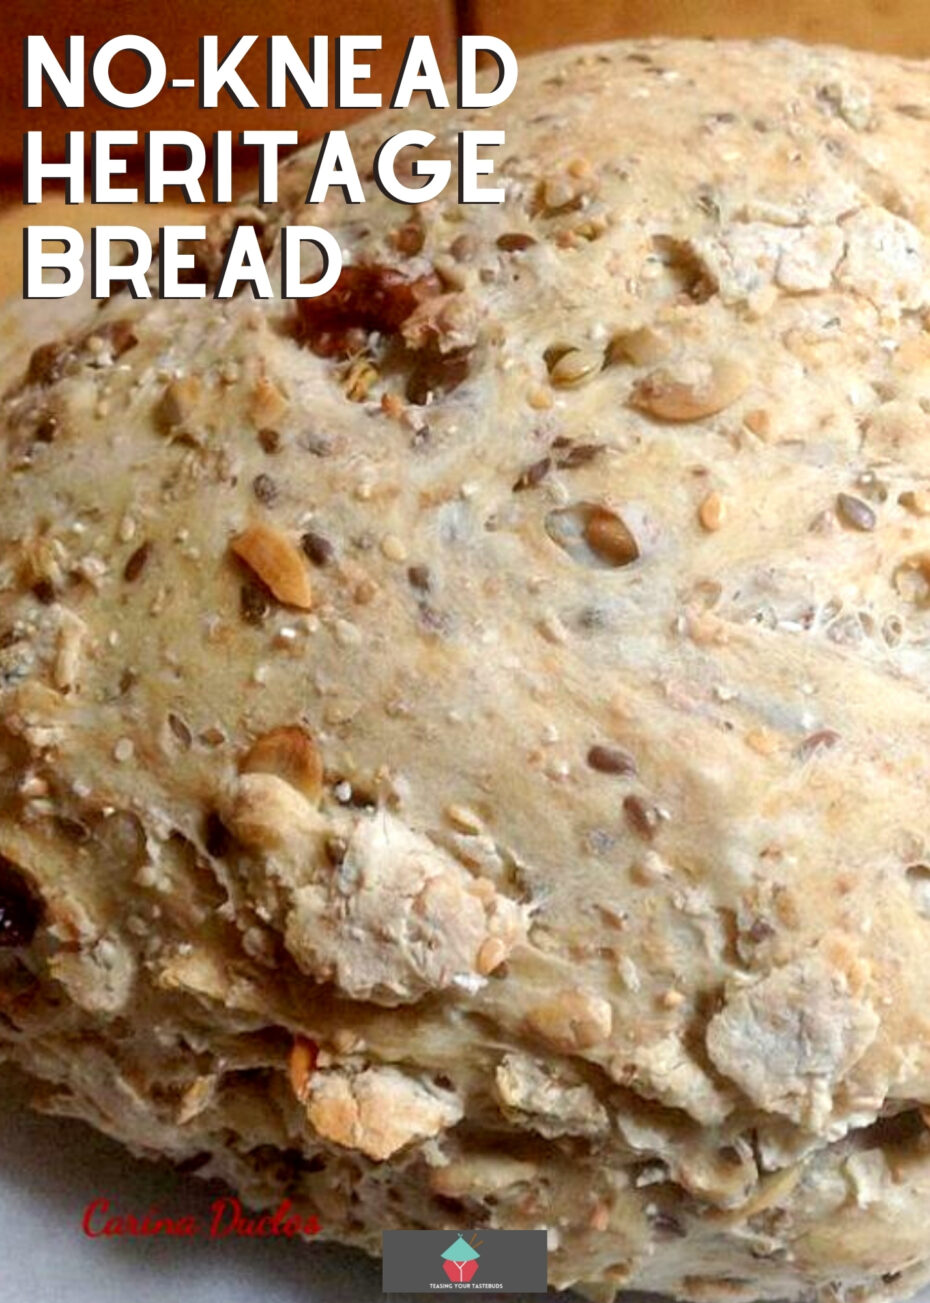 No-Knead Heritage Bread recipe, a lovely soft bread, a mix of white and whole wheat flour, and a variety of seeds. Delicious served warm with a big bowl of soup or simply in slices with a generous spread of butter.